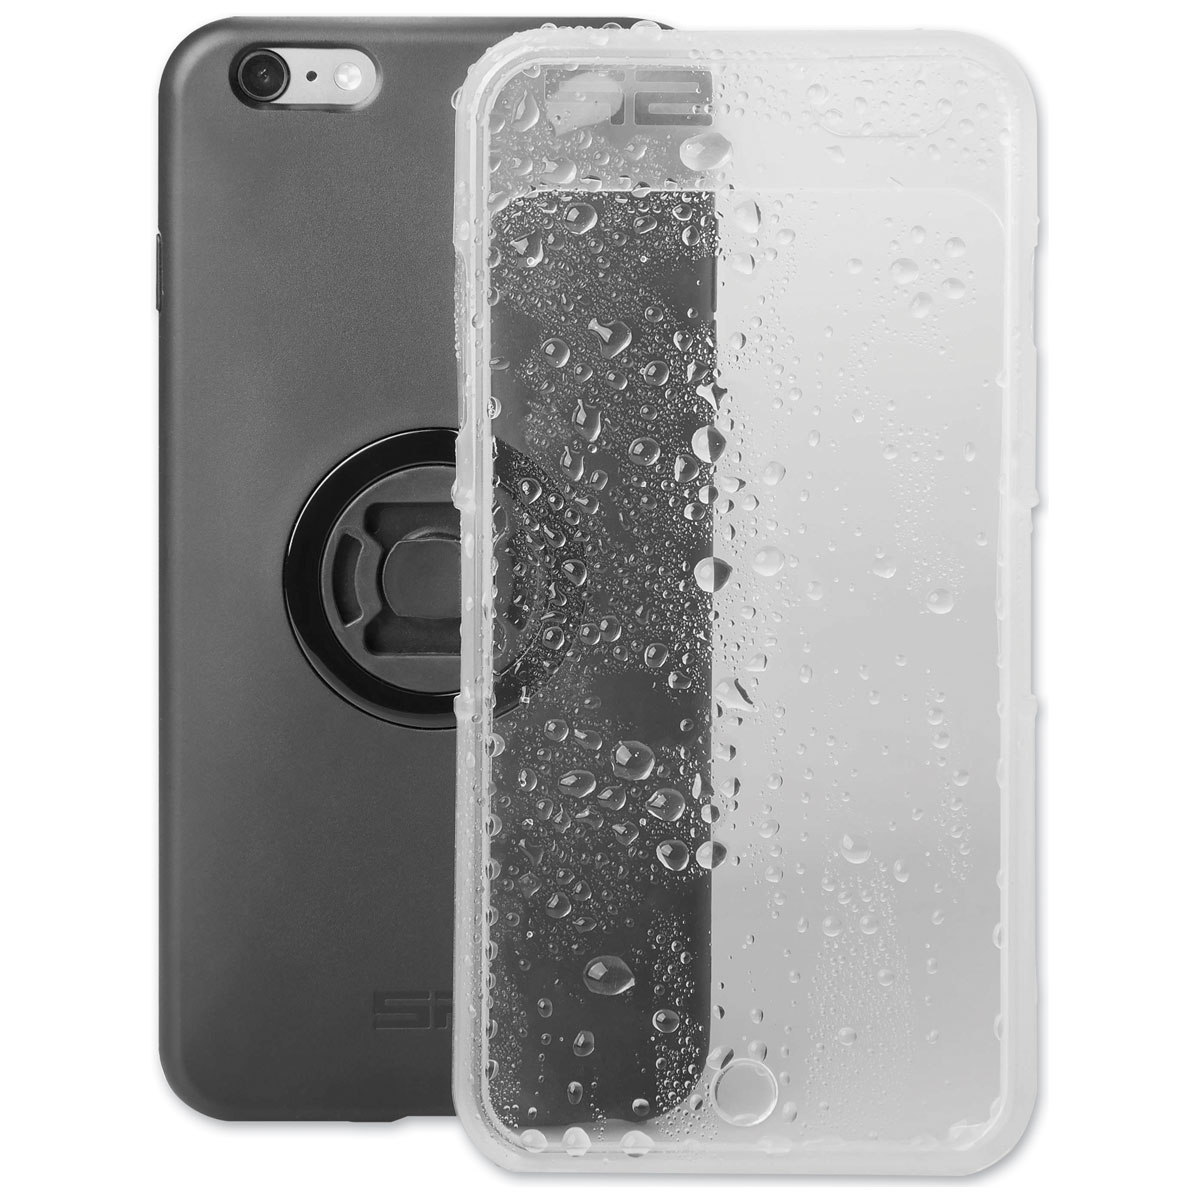 SP Connect Weather Cover for iPhone 6/6S/7/8 Plus